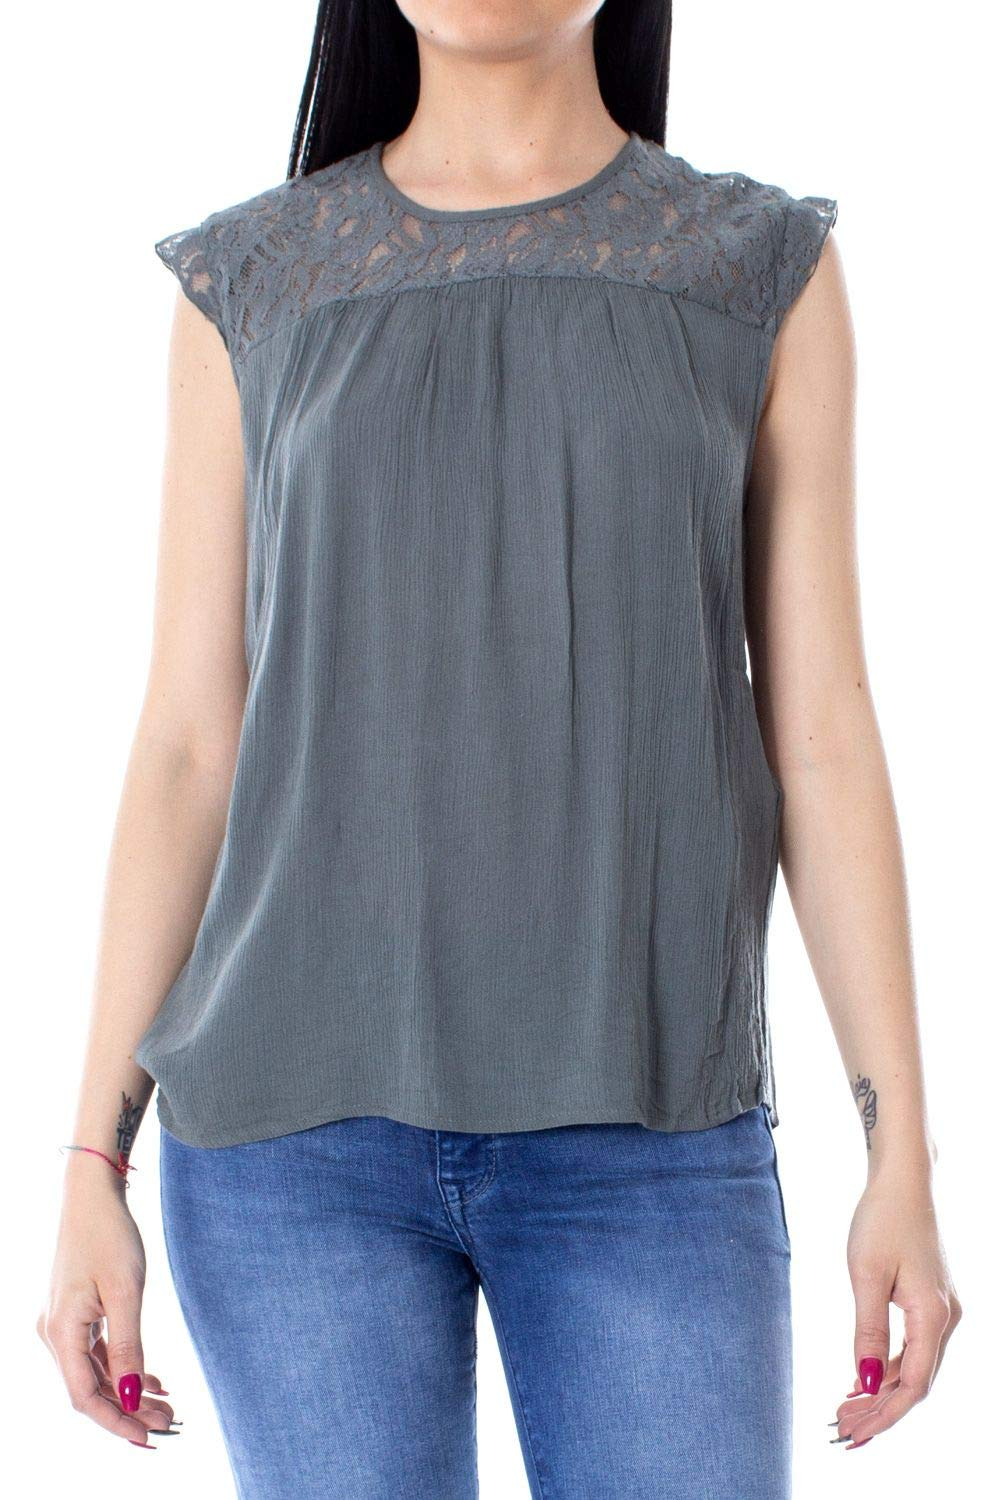 Only Women's 15157657GREY Grey Viscose Tank Top